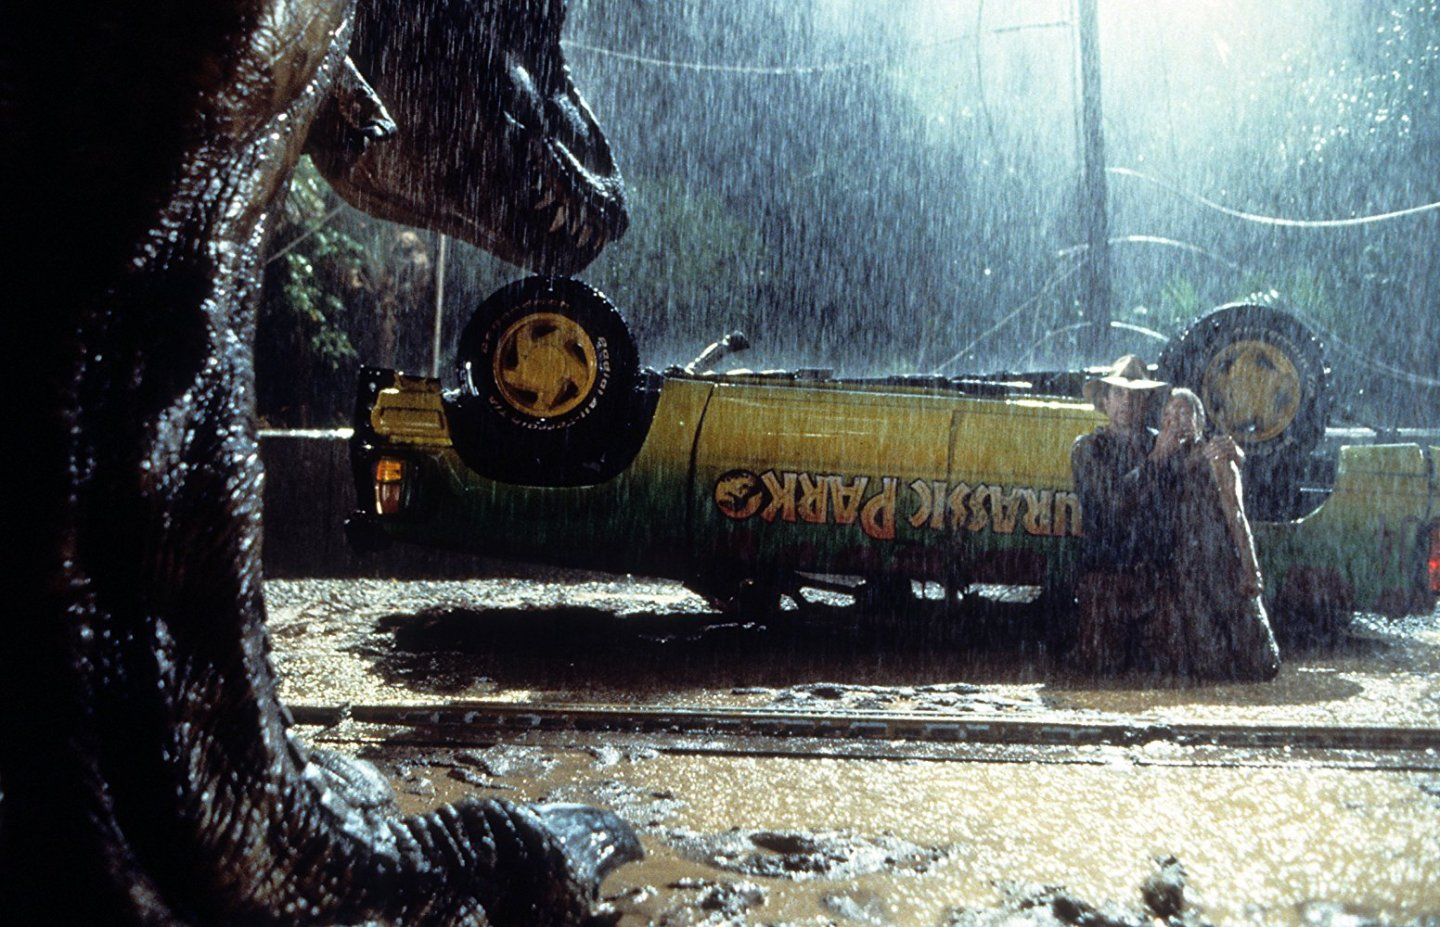 Jurassic Park featured